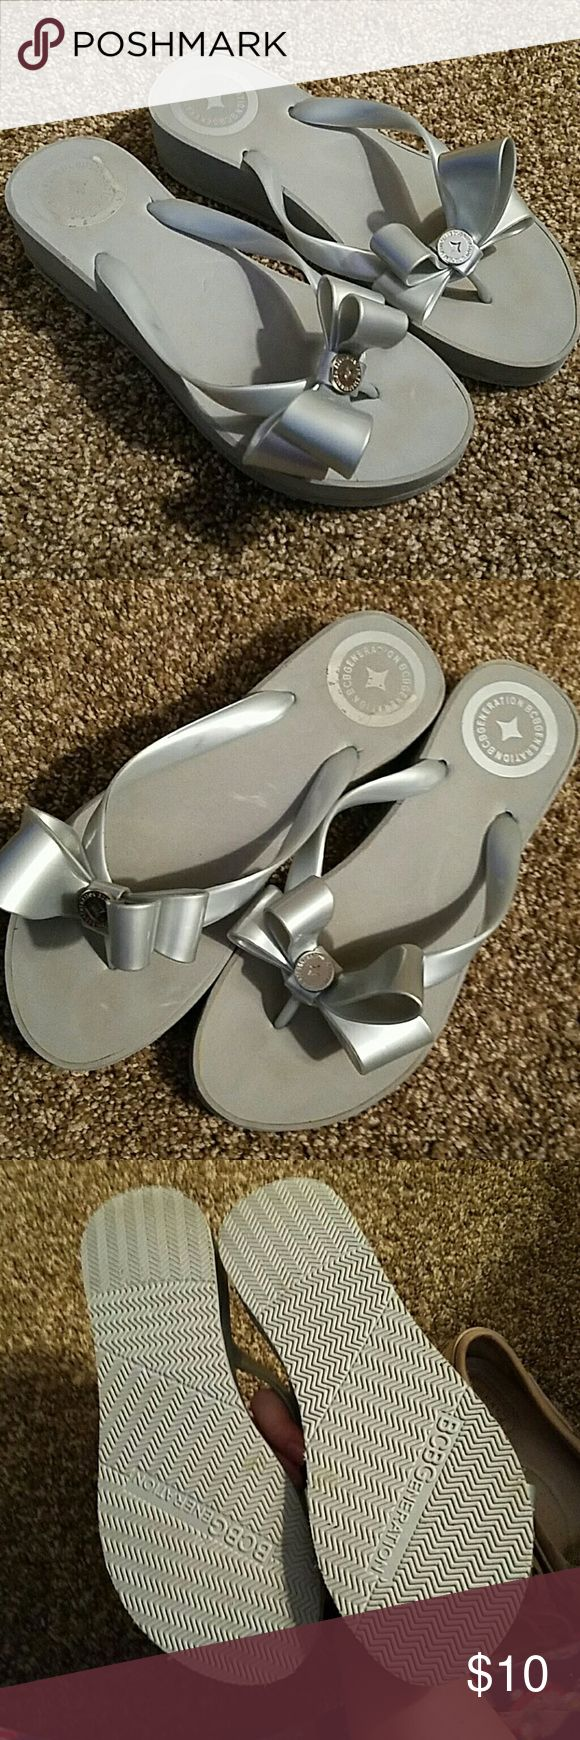 NWOT adorable BCBG bow flip flops! Like new, only wear is from sales sticker and store wear which may be easily removed. Adorable and comfortable! Heel is approximately two inches BCBGeneration Shoes Sandals